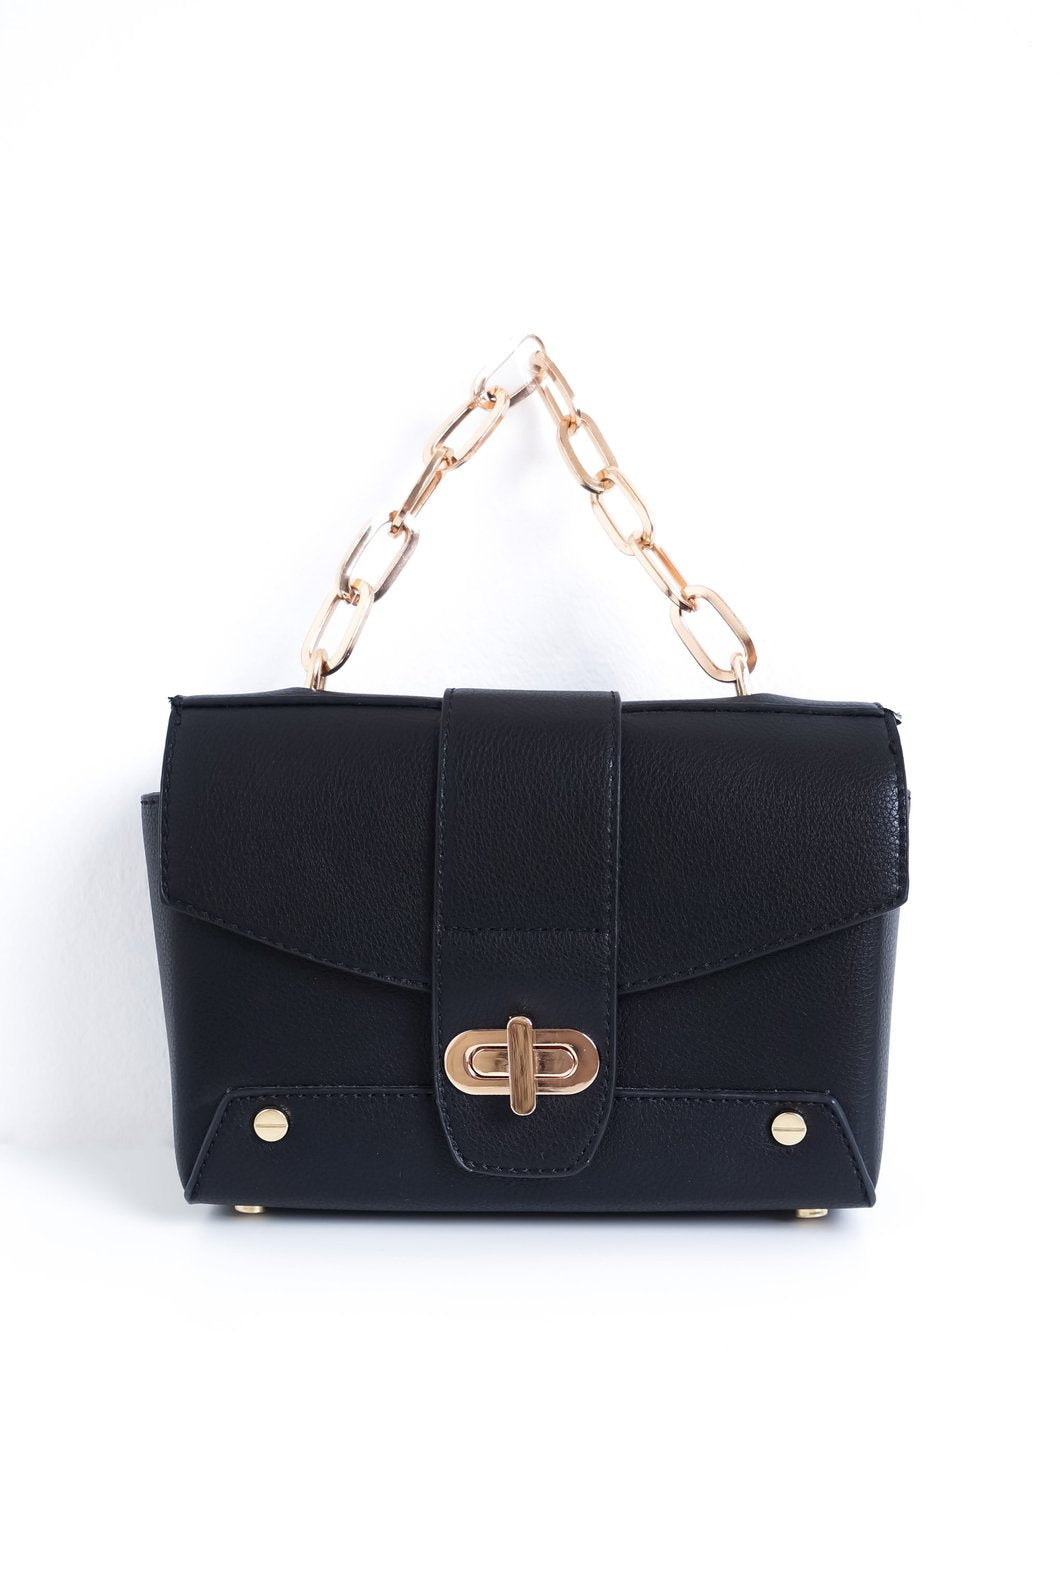 Abigail Black handbag